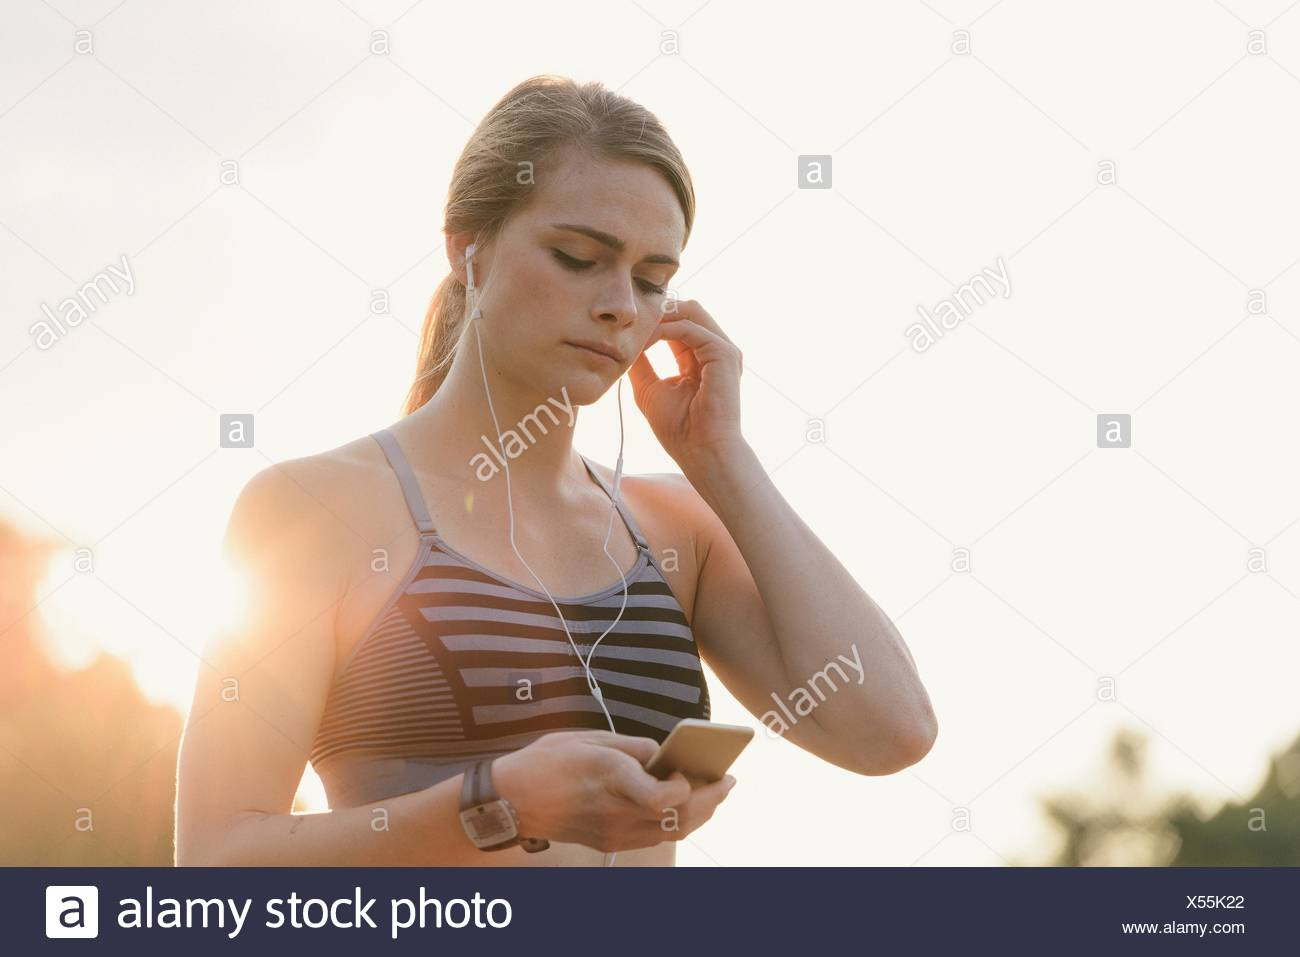 Young woman working out, wearing earphones, holding mp3 player - Stock Image